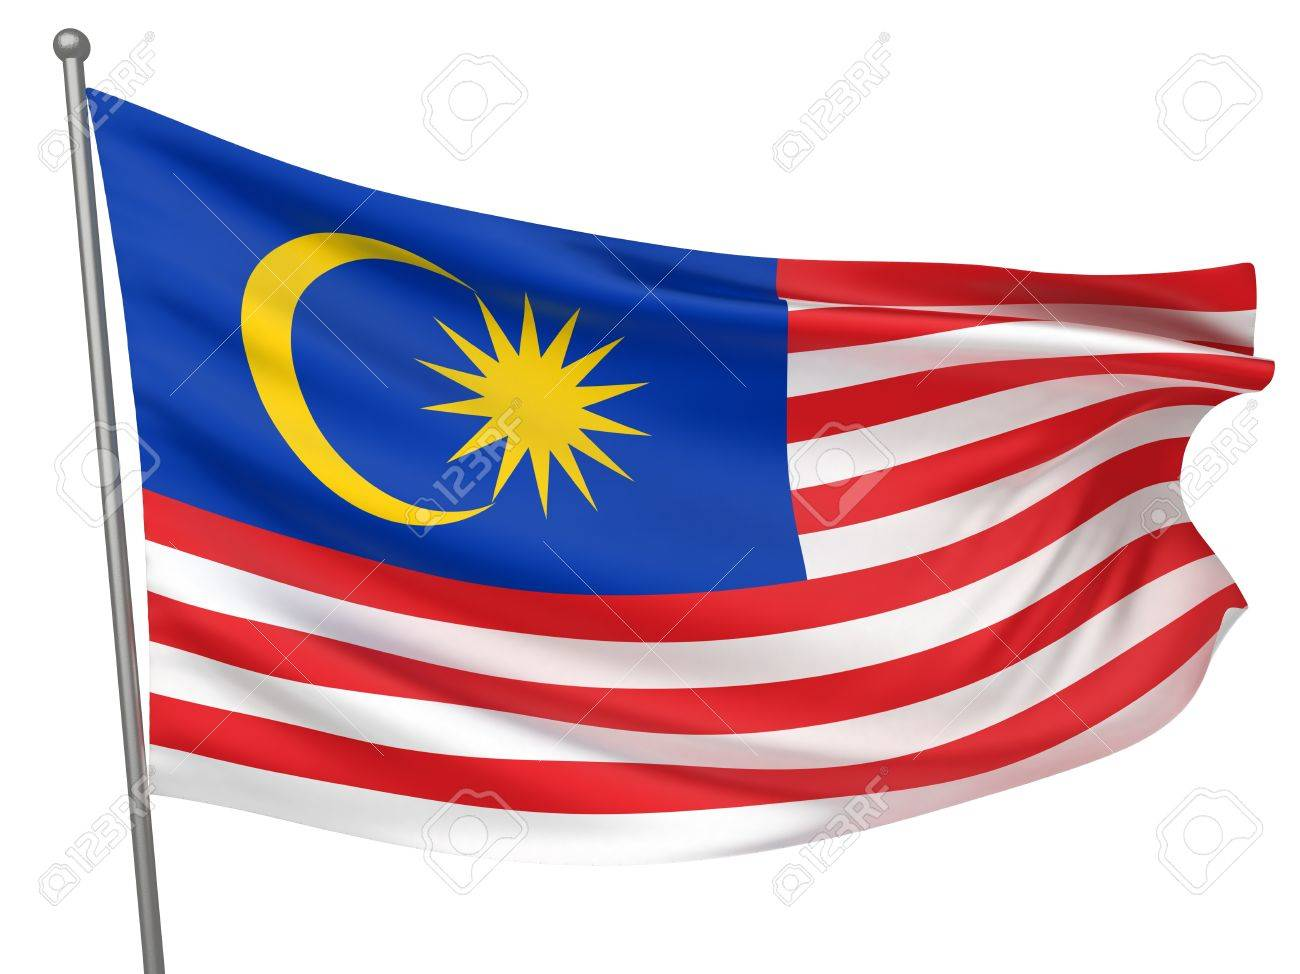 Malaysia National Flag  | All Countries Collection - Isolated Image Stock Photo - 9962012